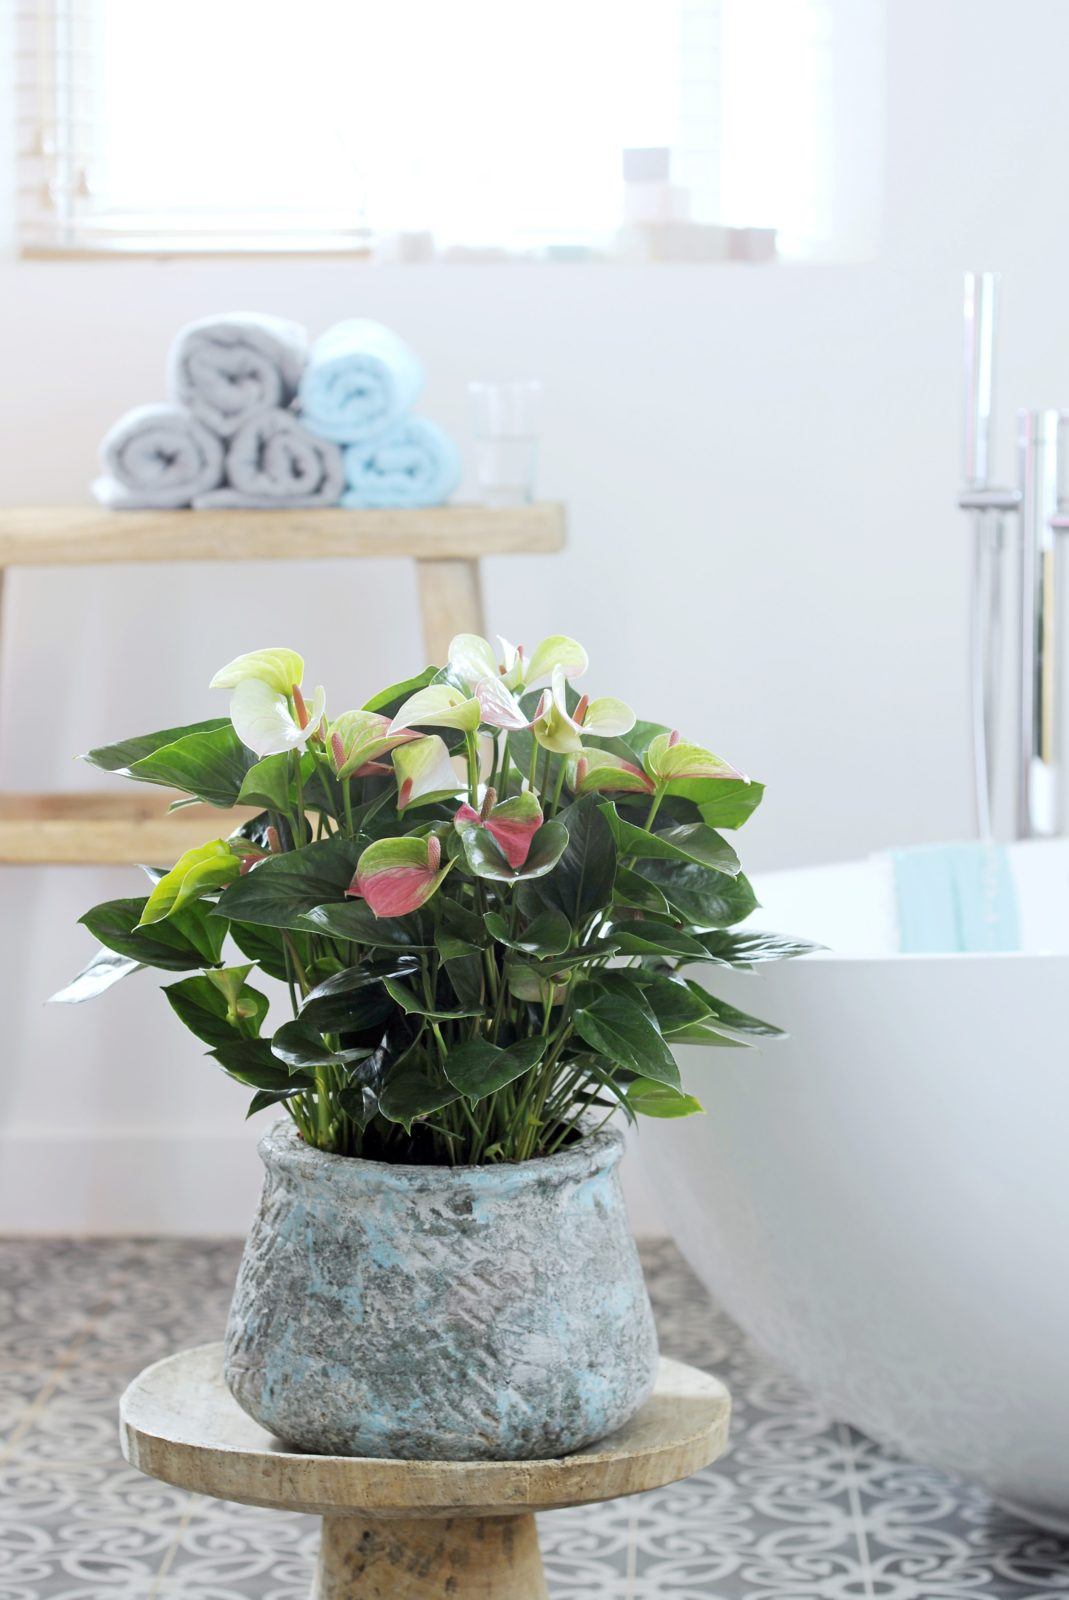 Bring spring into the house with Anthurium plants